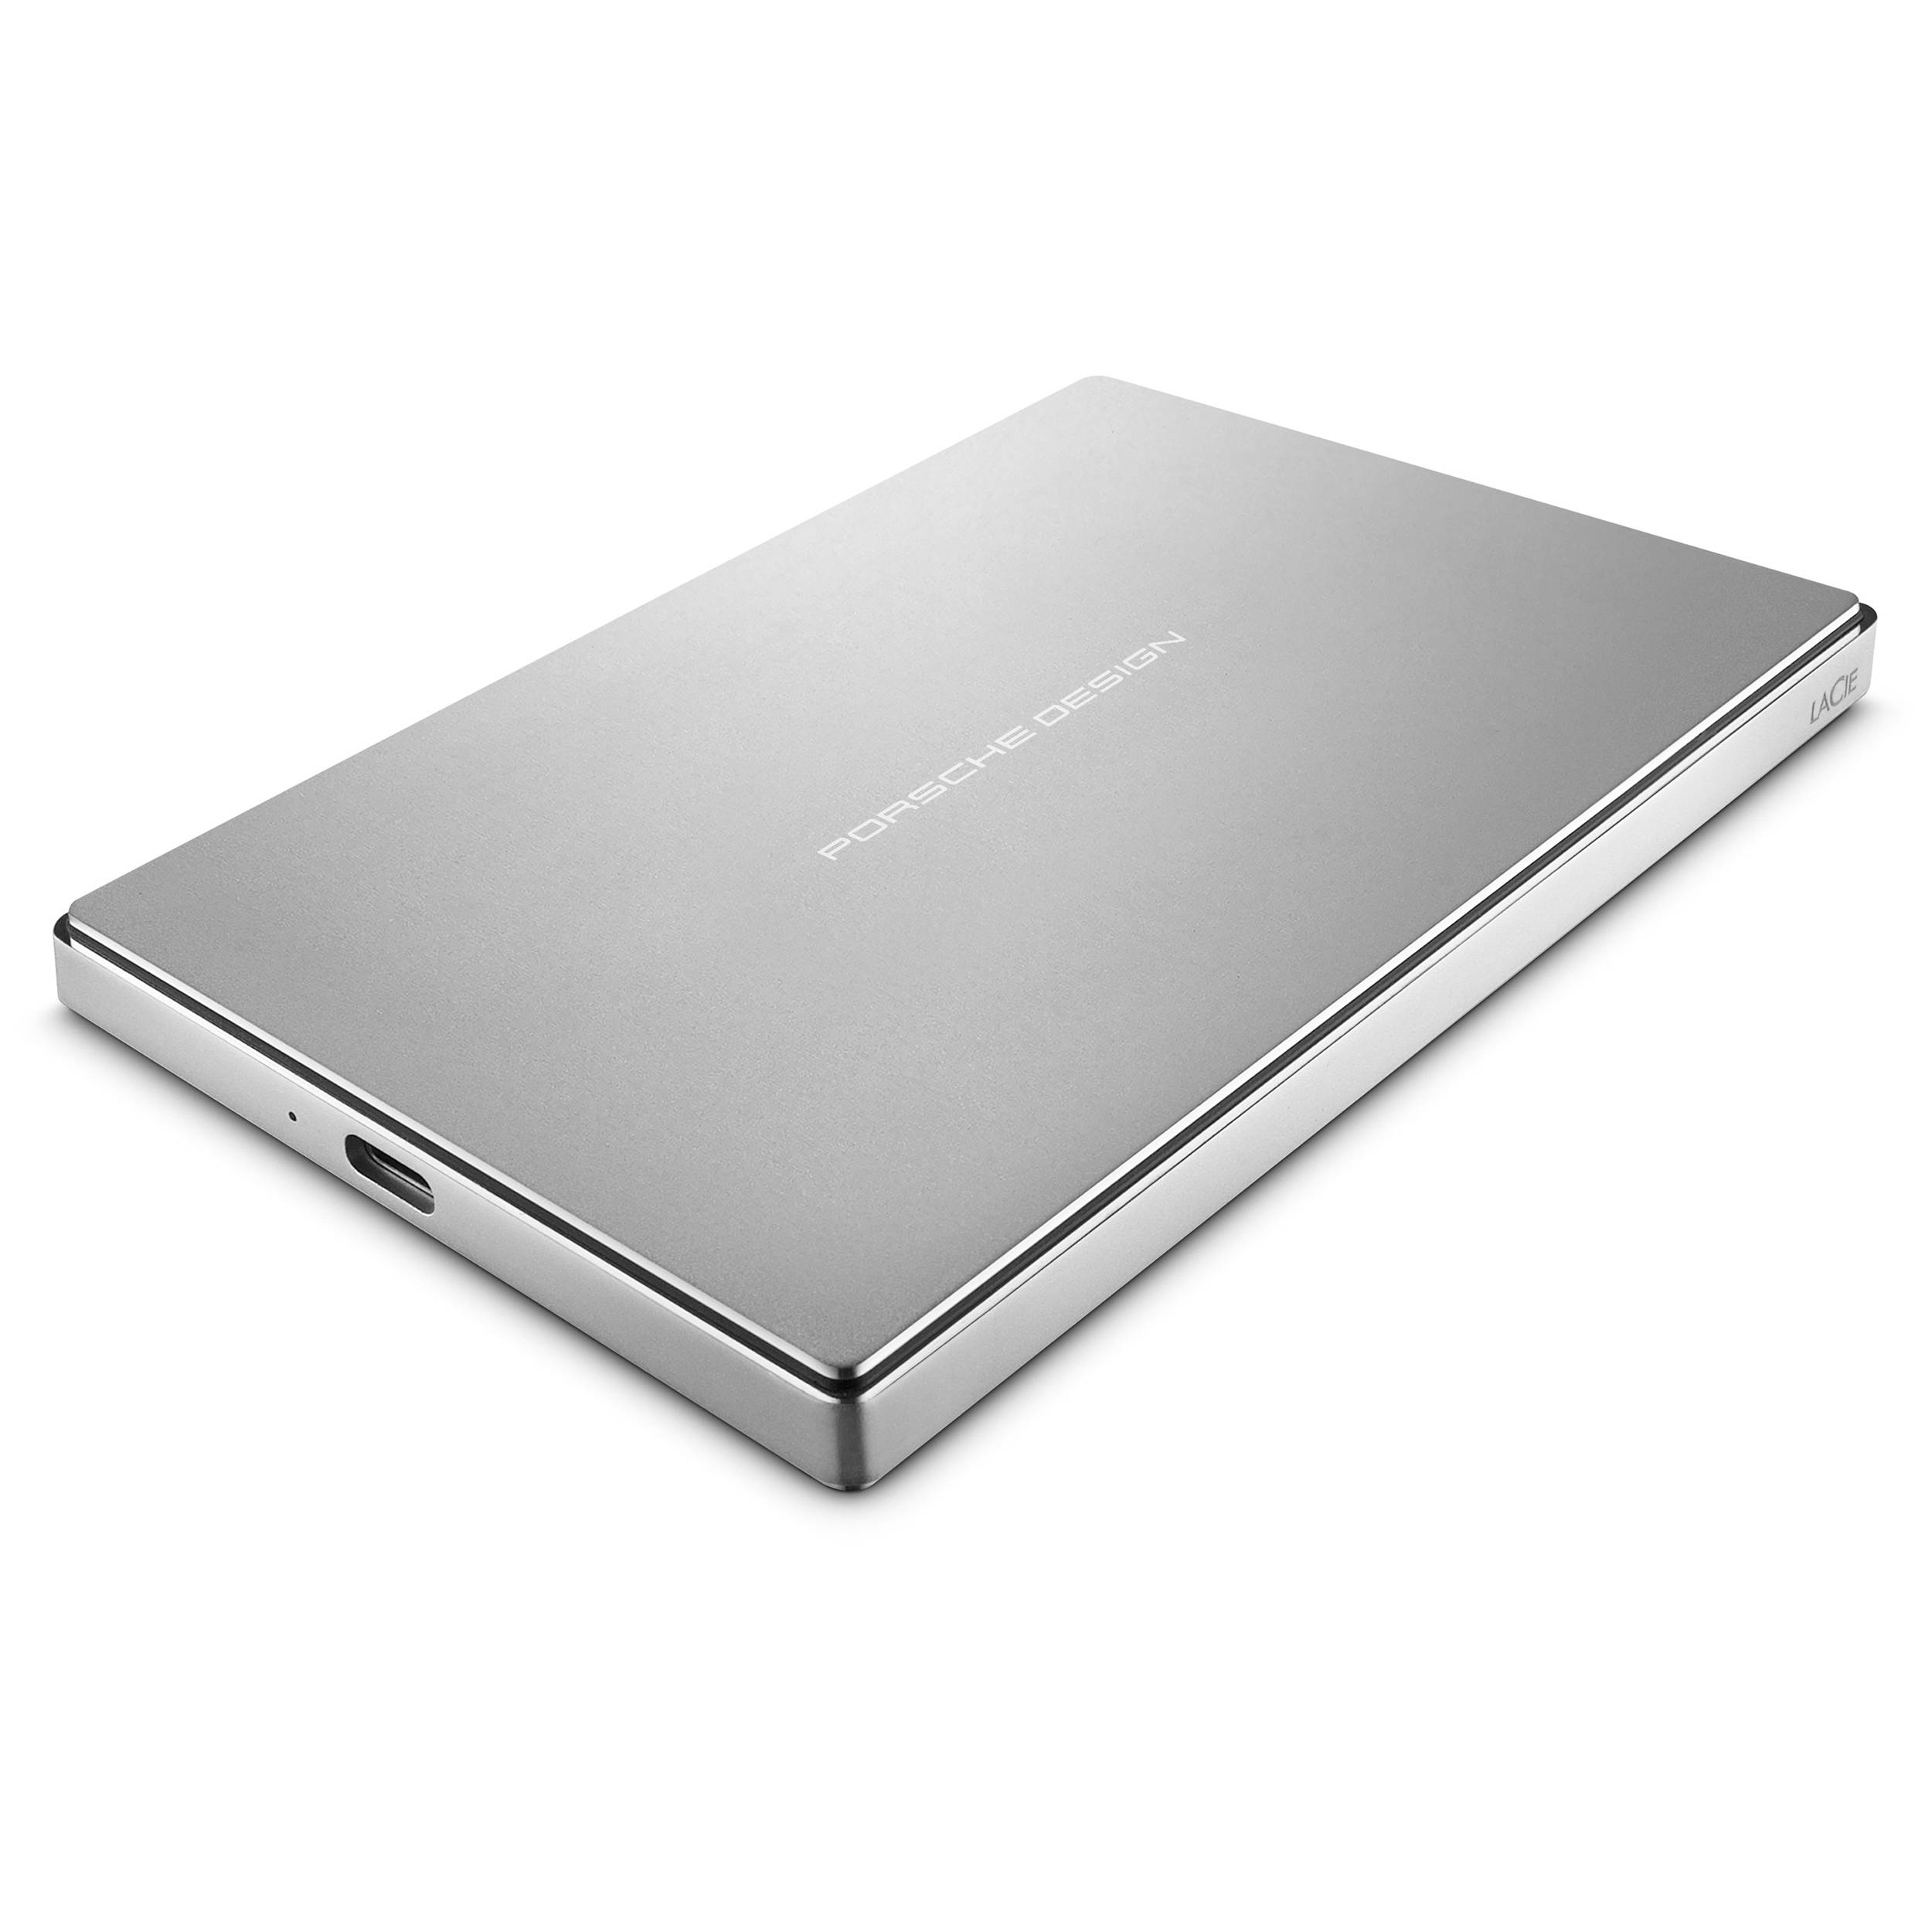 lacie 2tb porsche design usb 3 0 type c mobile drive. Black Bedroom Furniture Sets. Home Design Ideas